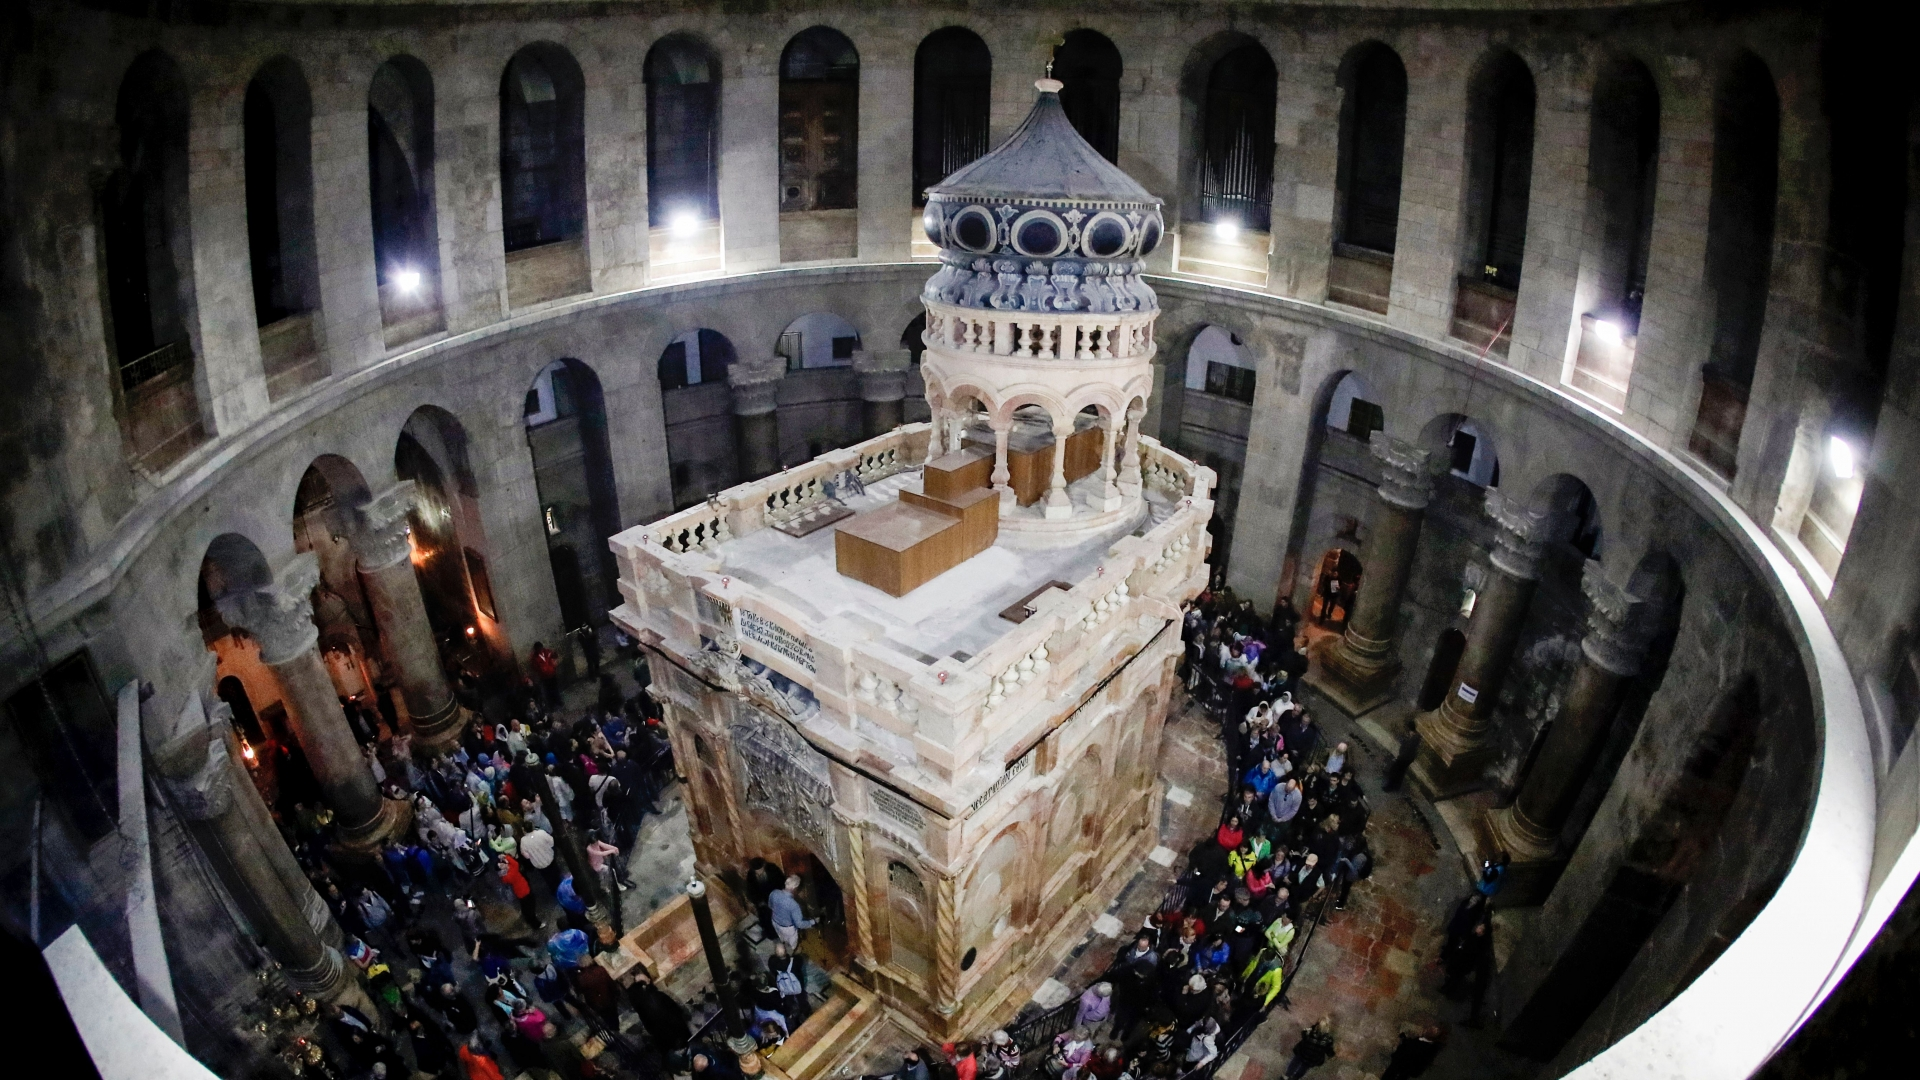 The renovated Edicule of the Tomb of Jesus (where his body is believed to have been laid)  at the Church of the Holy Sepulchre in the Old City of Jerusalem. (Credit: Thomas Coex/AFP/Getty Images)